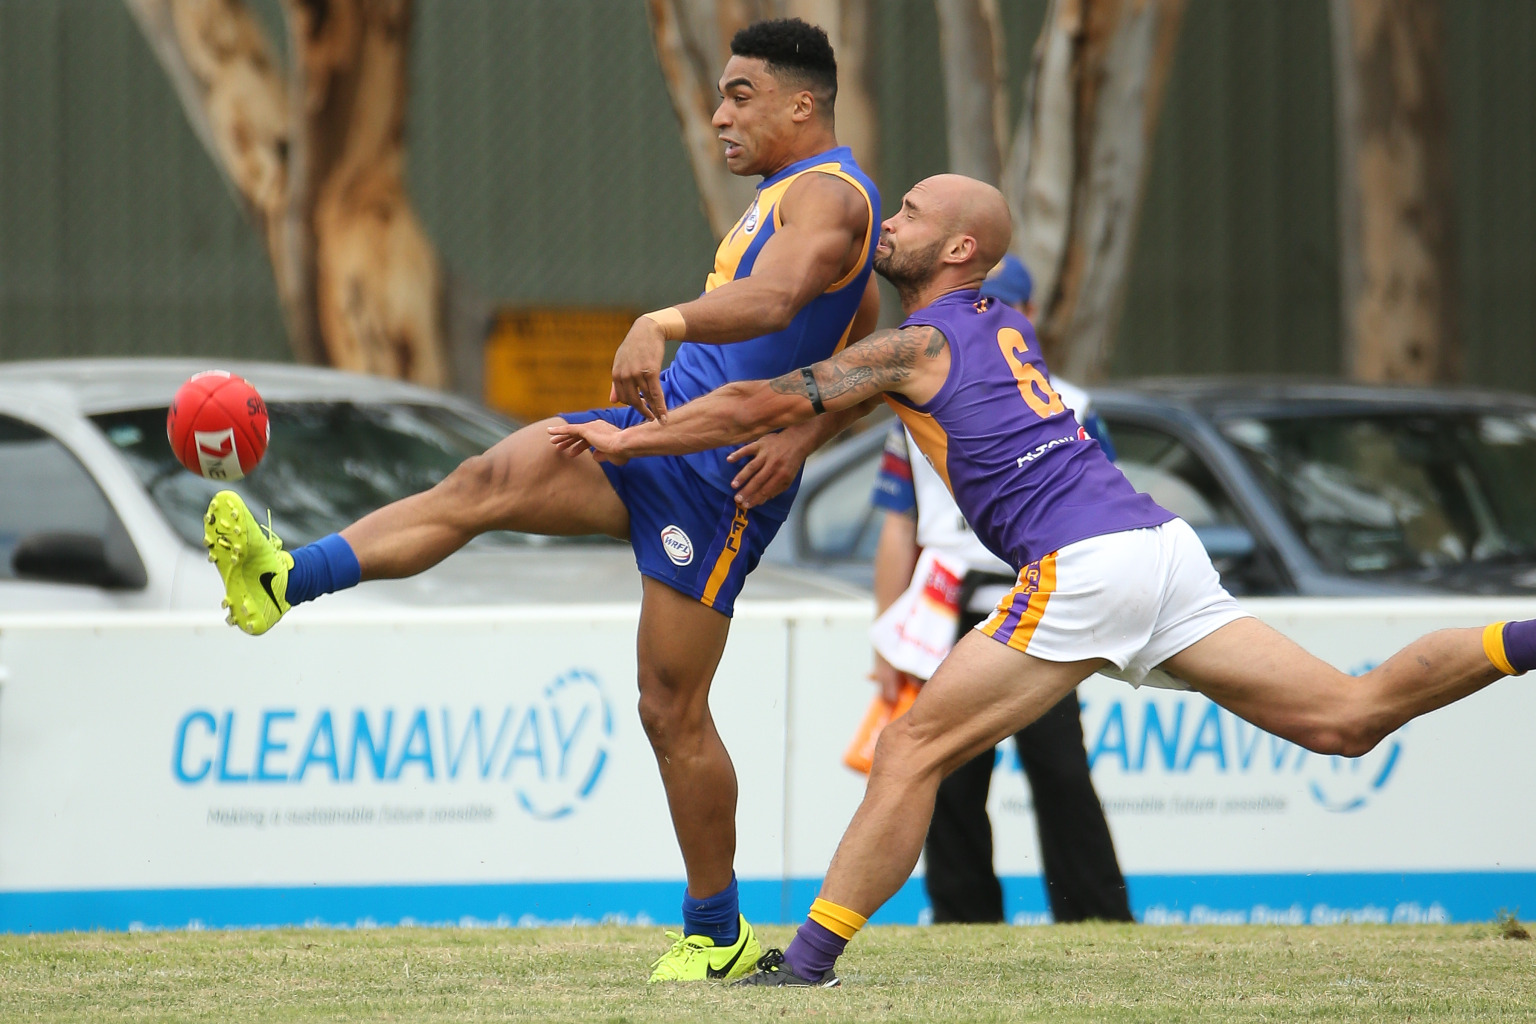 2bd5117303f LIONS PREVAIL IN EXCITING ROUND 1 FINISH - Western Region Football League -  SportsTG